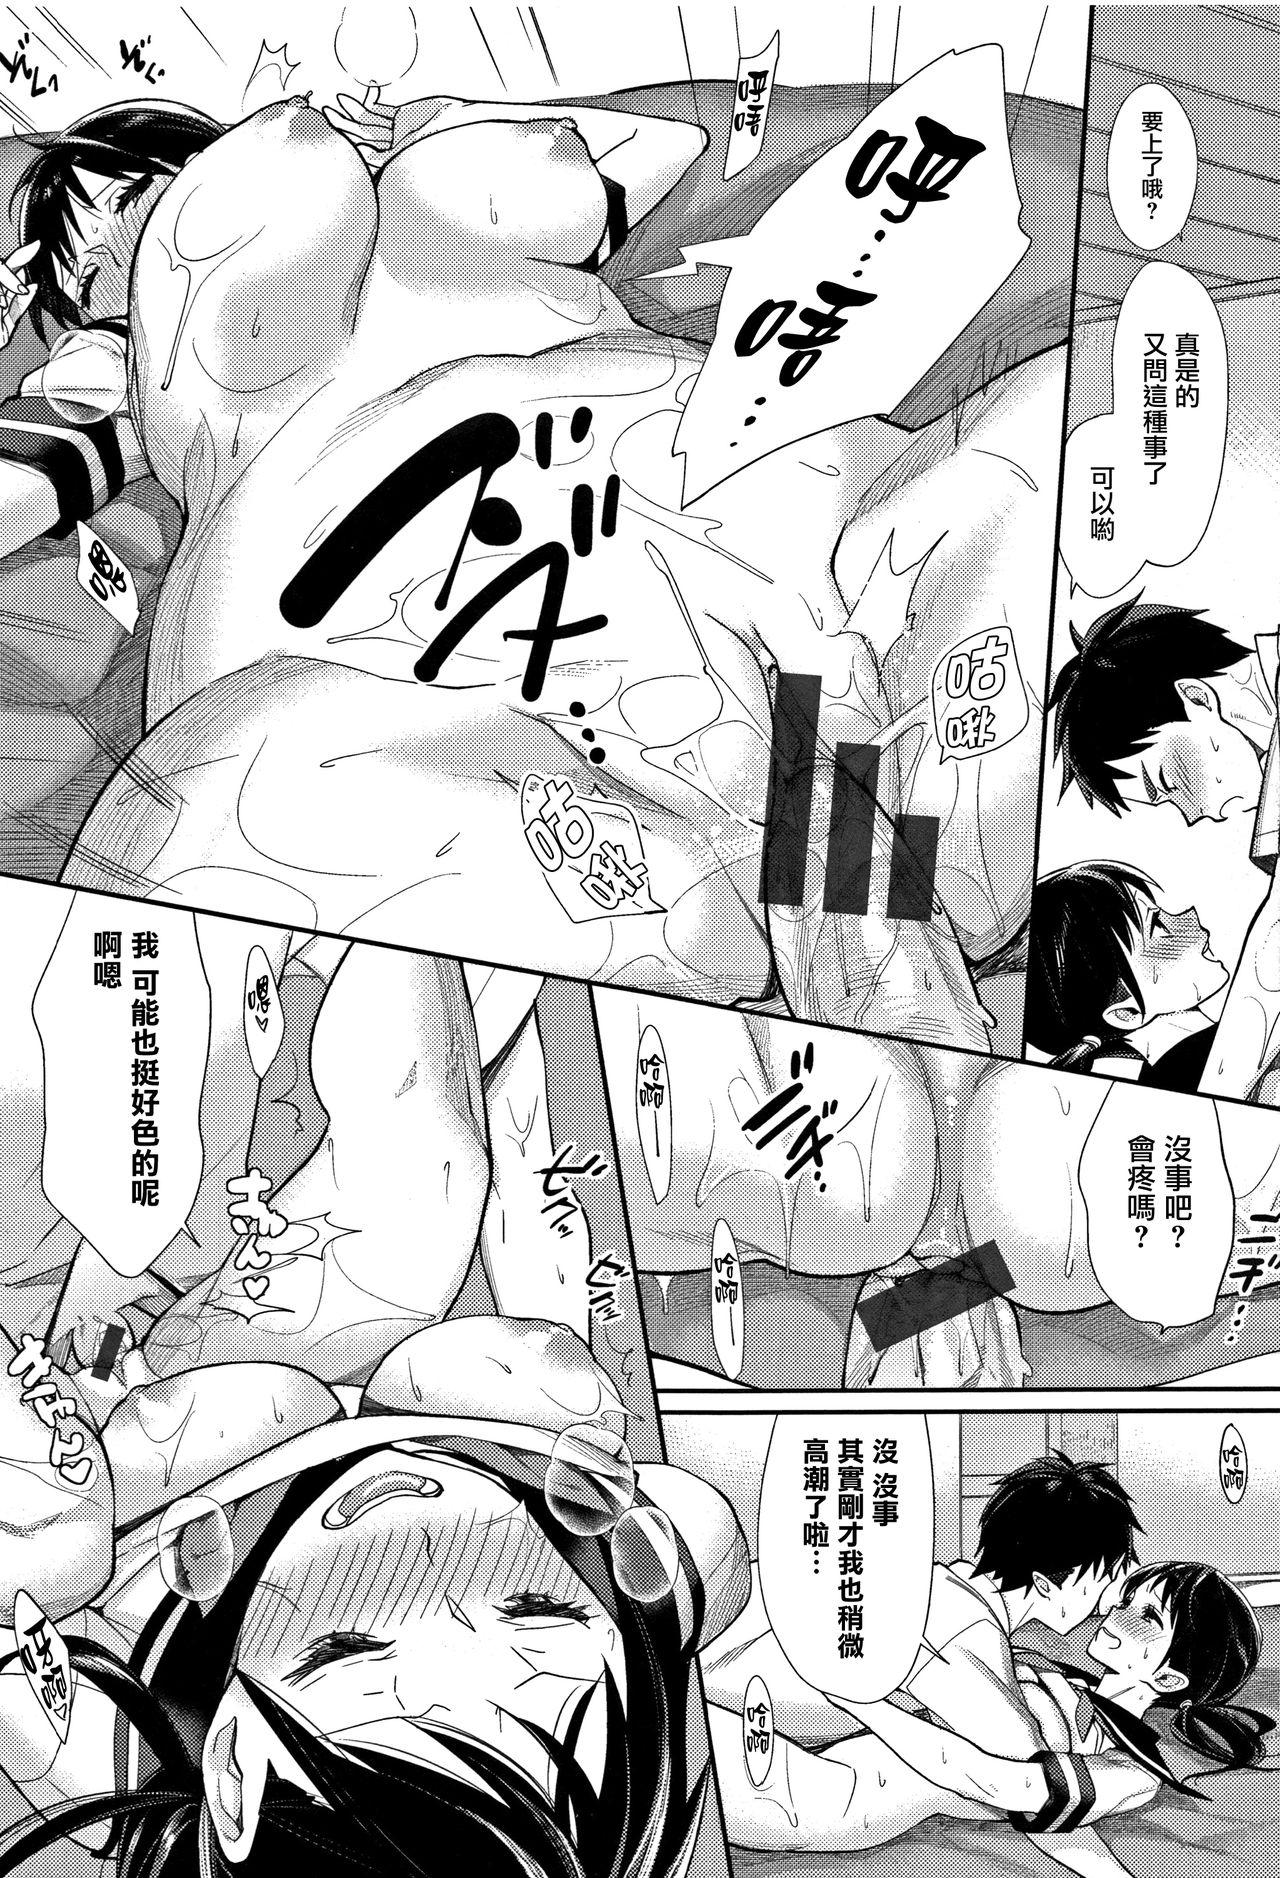 [MGMEE] Bokura no Etude - Our H Chu Do Ch.1-7 [Chinese] [無邪気漢化組] 92